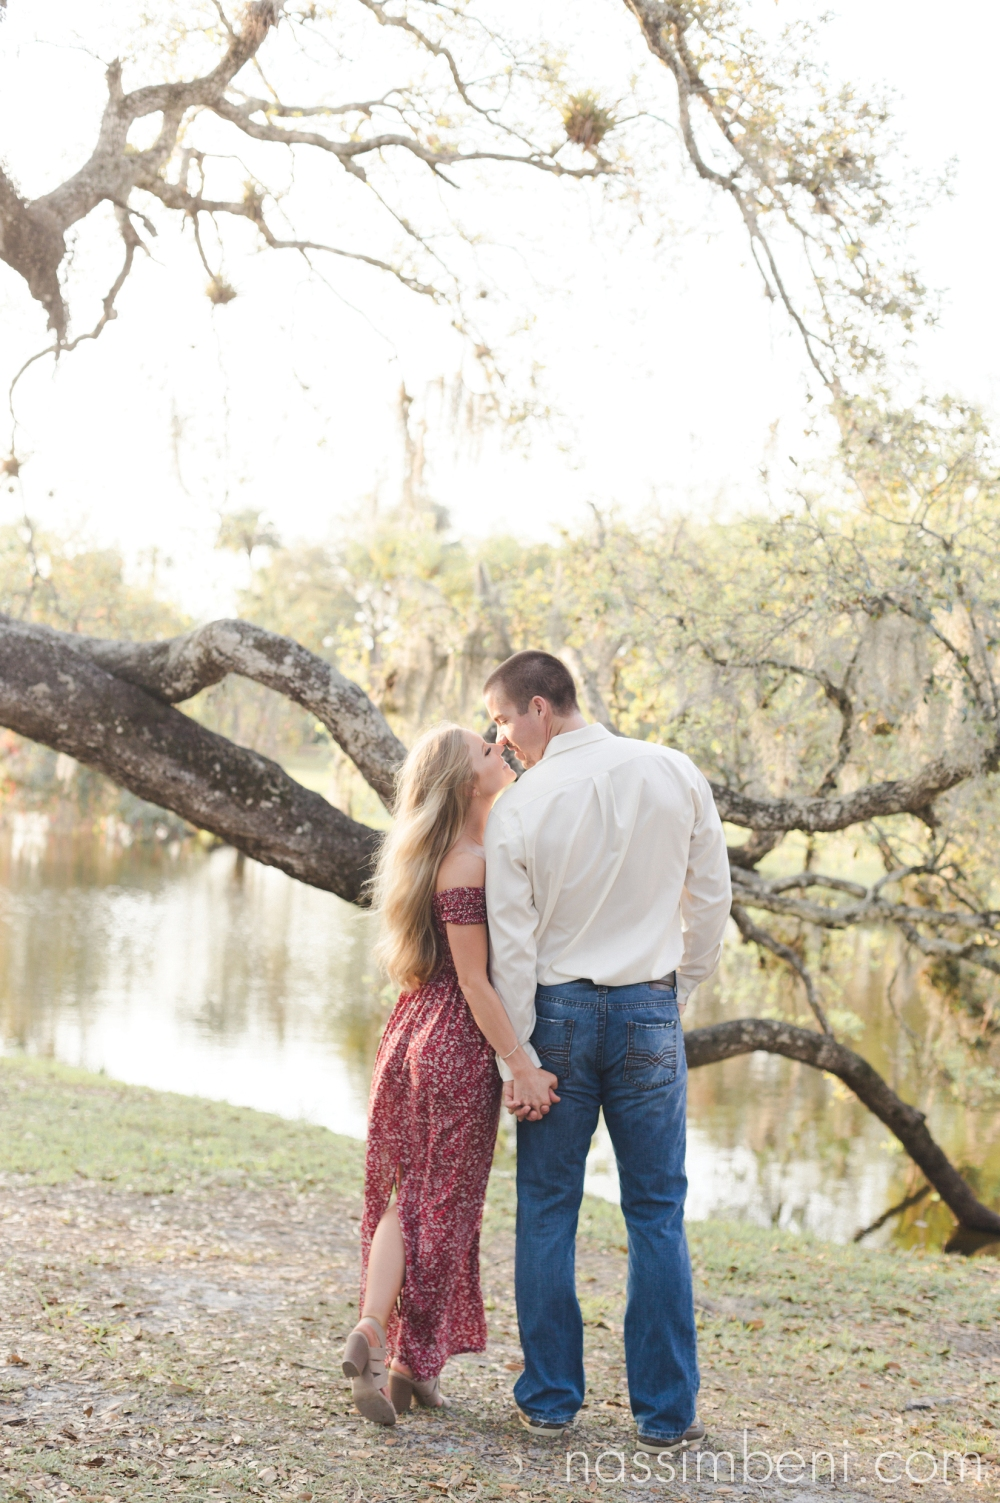 white-city-park-engagement-photos-nassimbeni-photography-6